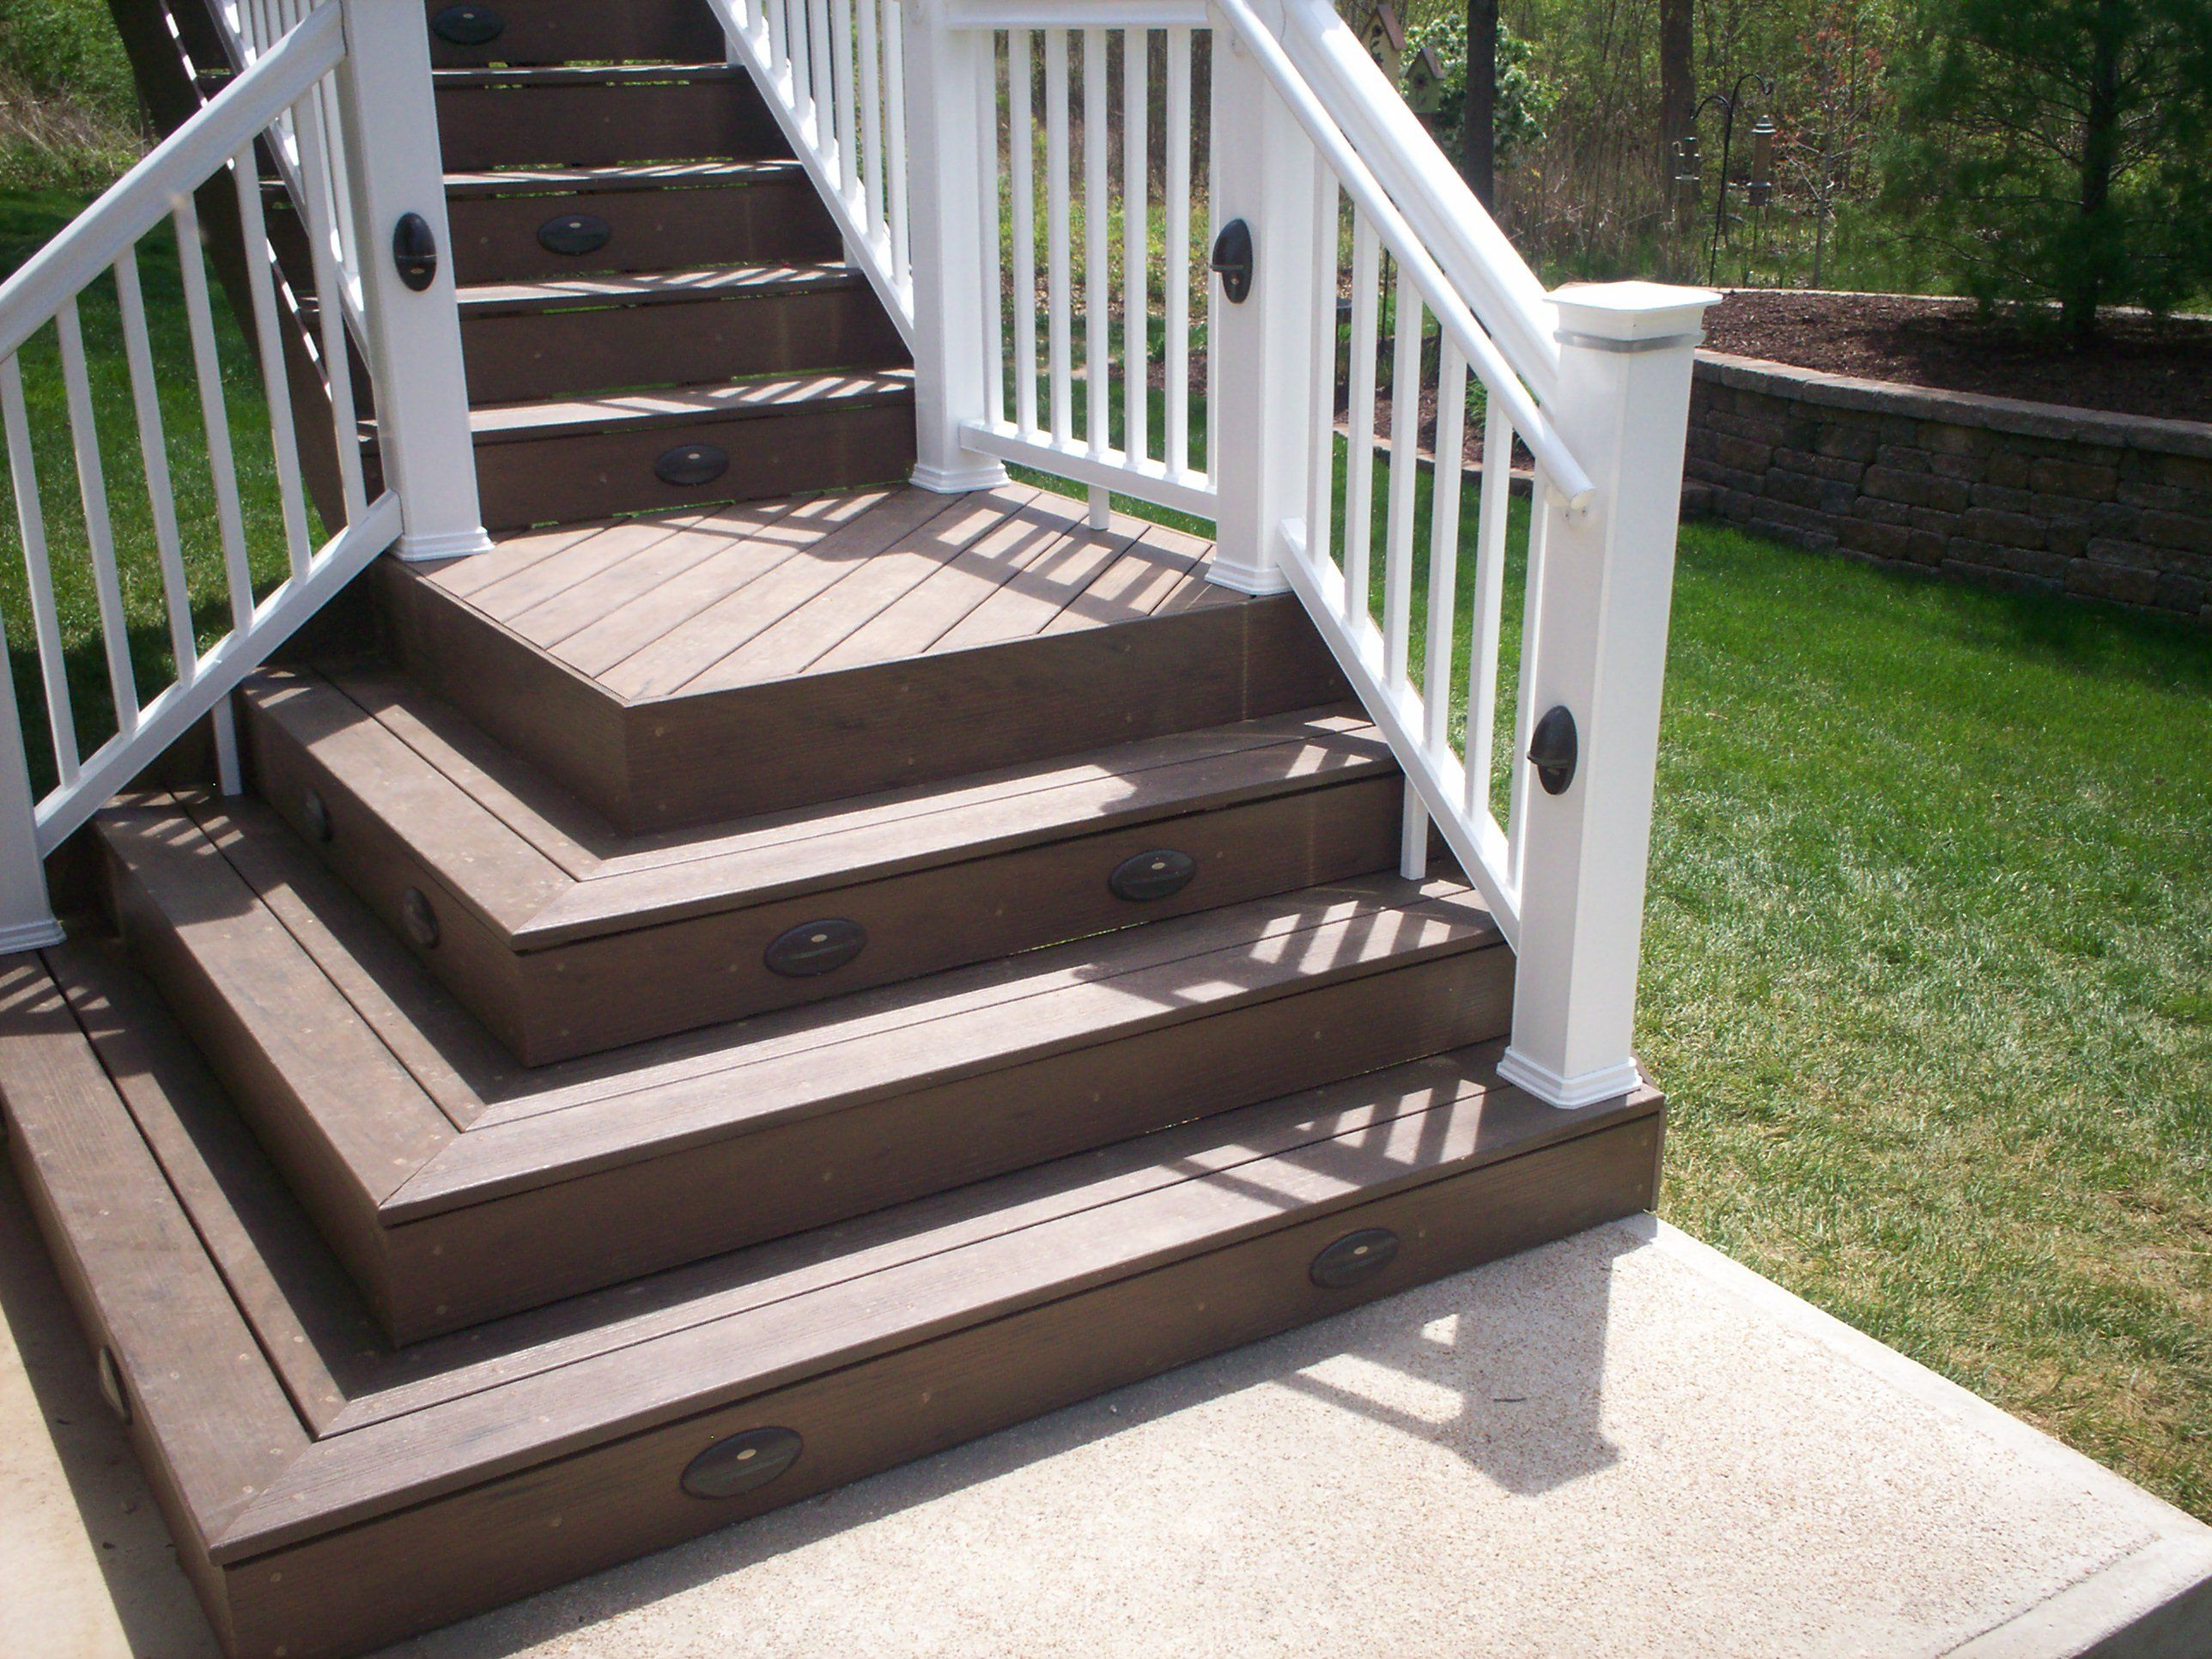 Captivating Deck Stairs | St. Louis Deck Design: Step It Up With Deck Railing And Stairs